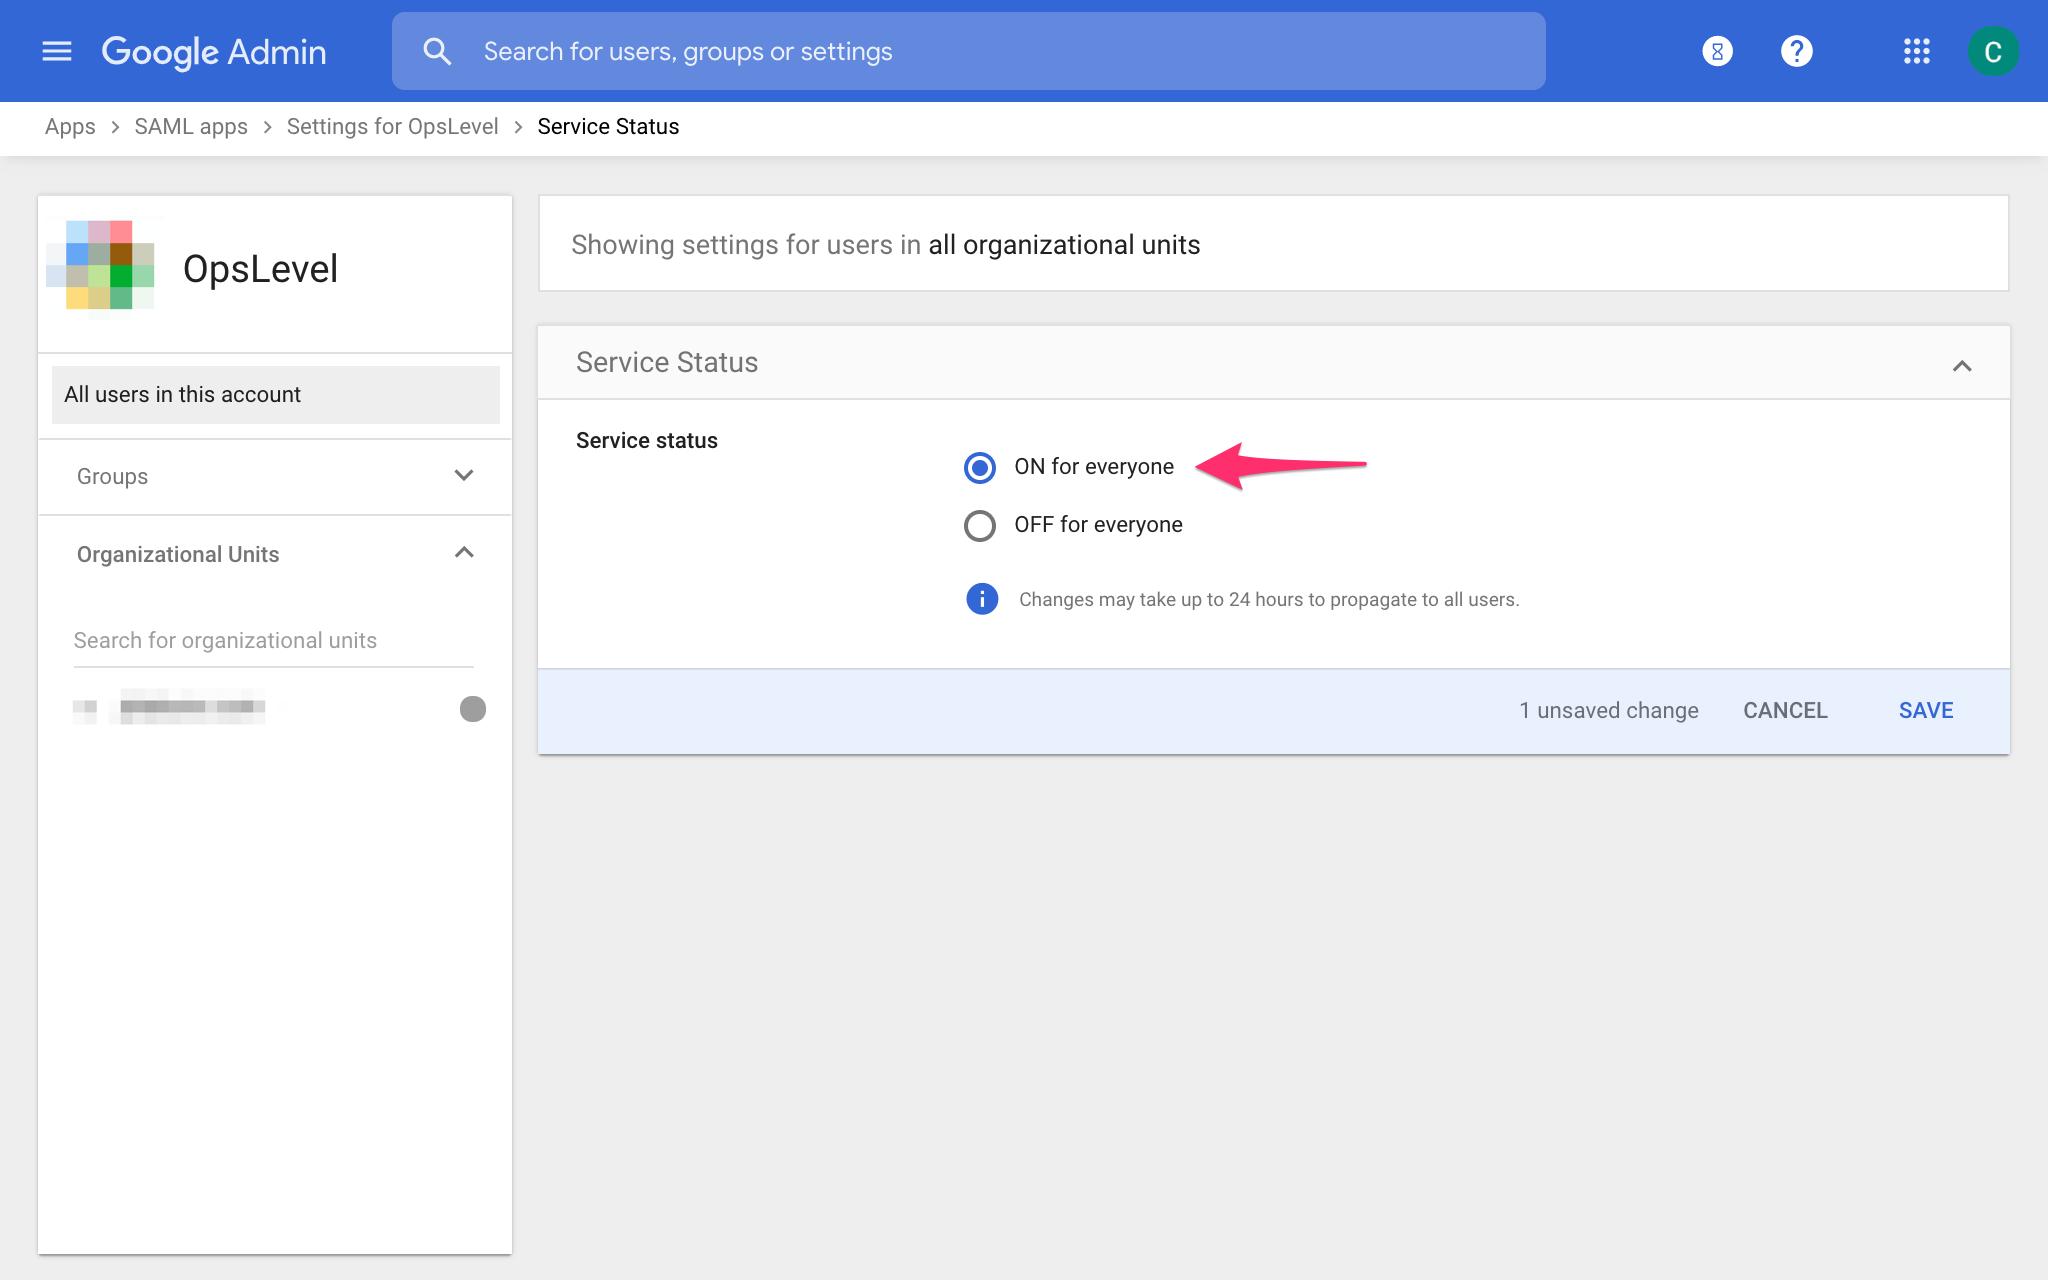 G Suite Enable App for Organization